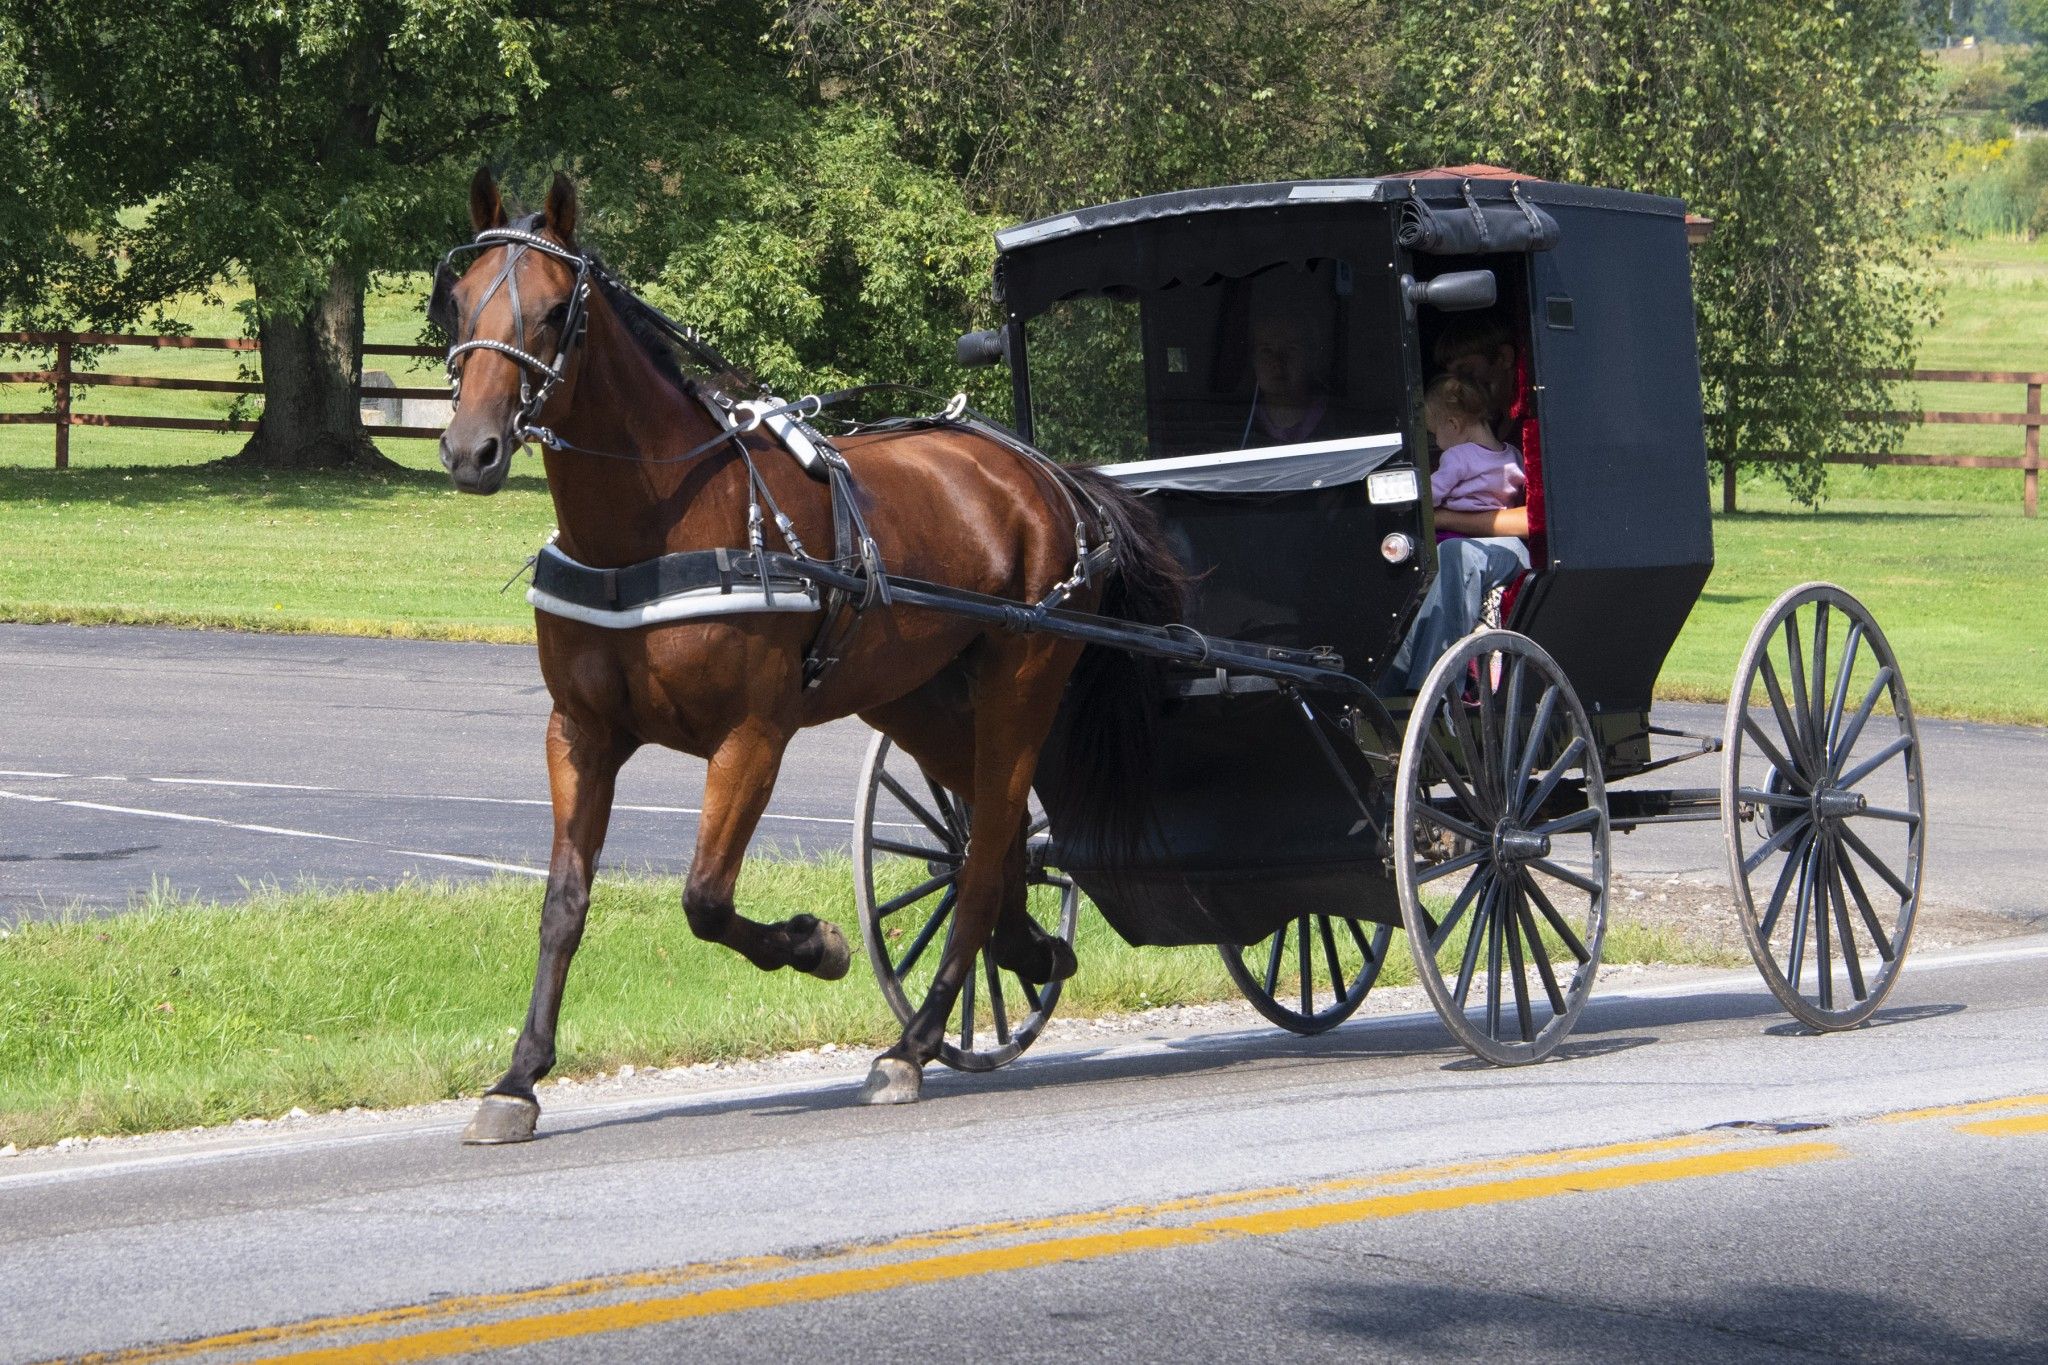 An Amish buggy shares a roadway on a rural road near Millersburg. (Photo by Art Weber)